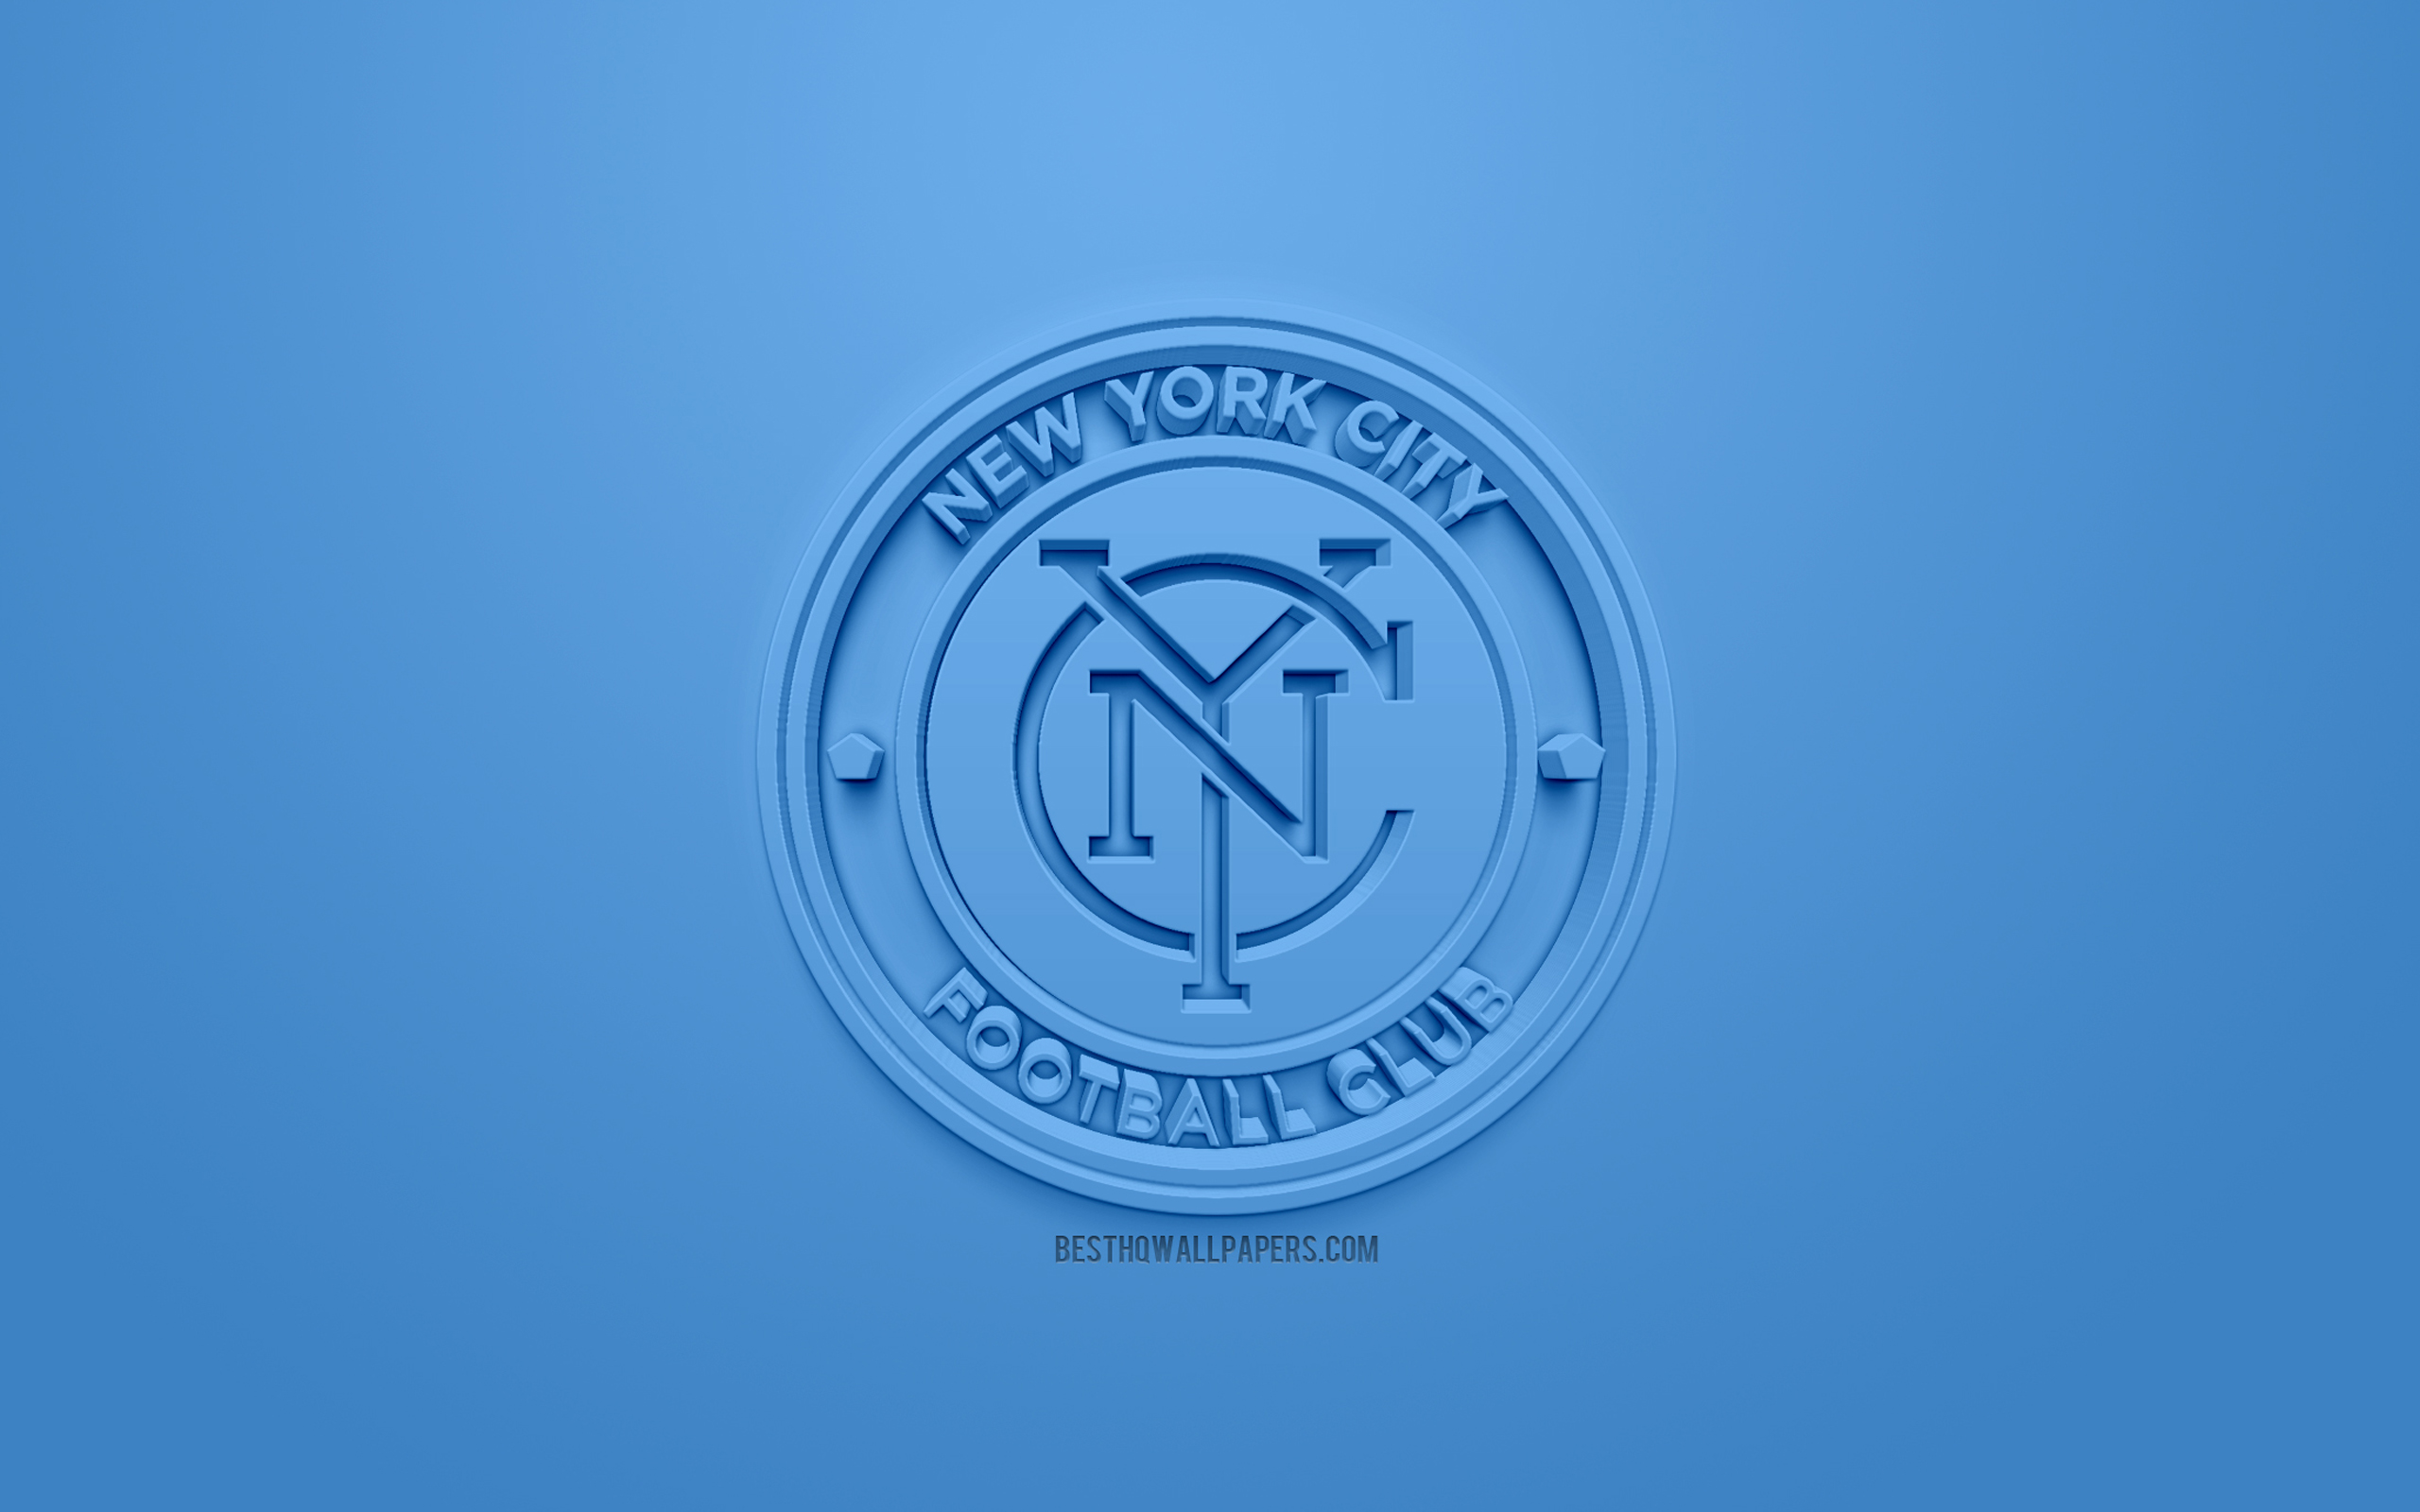 New York City FC, creativo logo 3D, sfondo blu, emblema 3d, club di football Americano, MLS, New York, USA, Major League Soccer, 3d arte, il calcio, il logo 3d, calcio